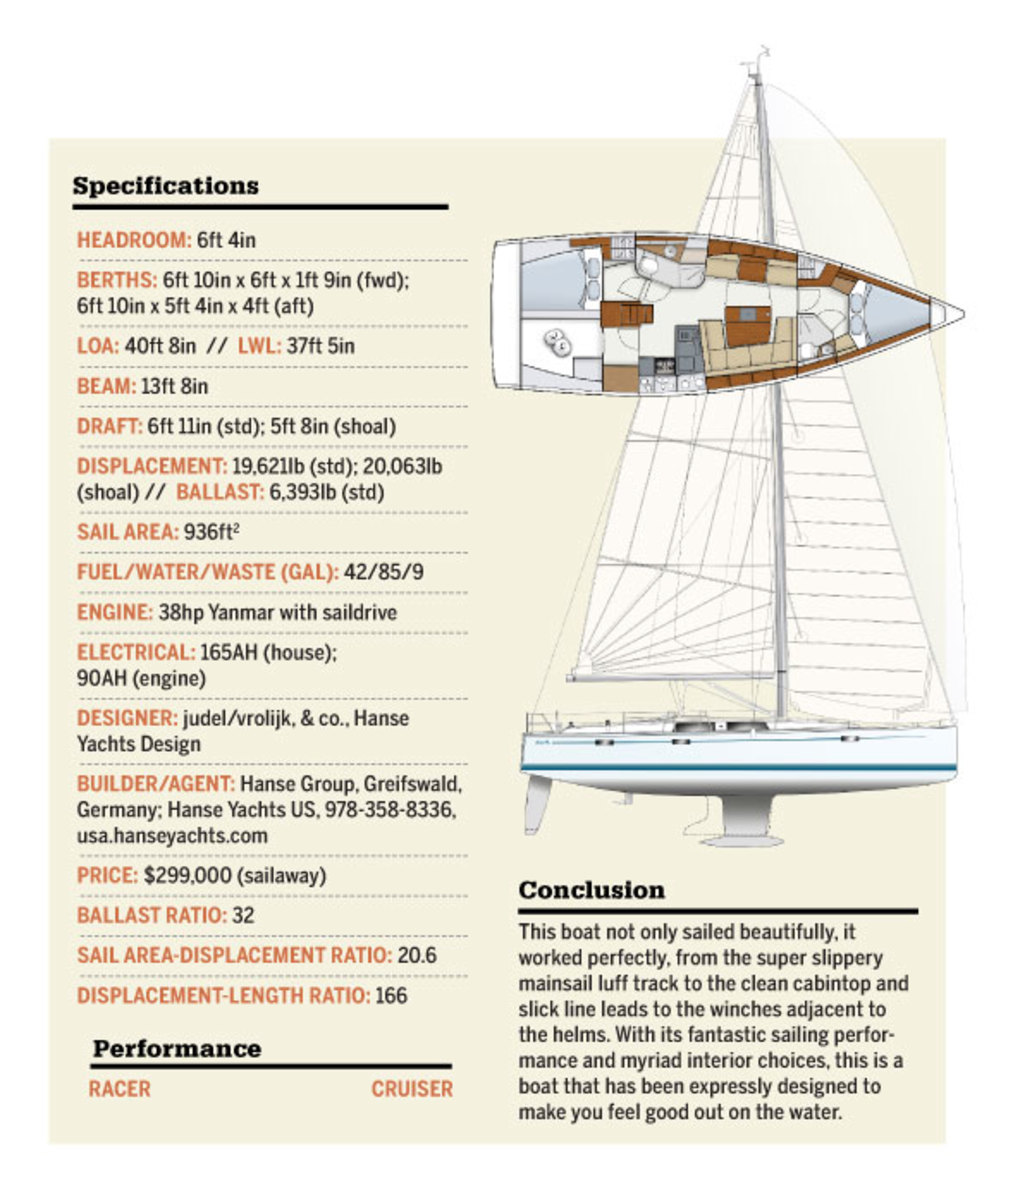 Hanse 415 Specifications